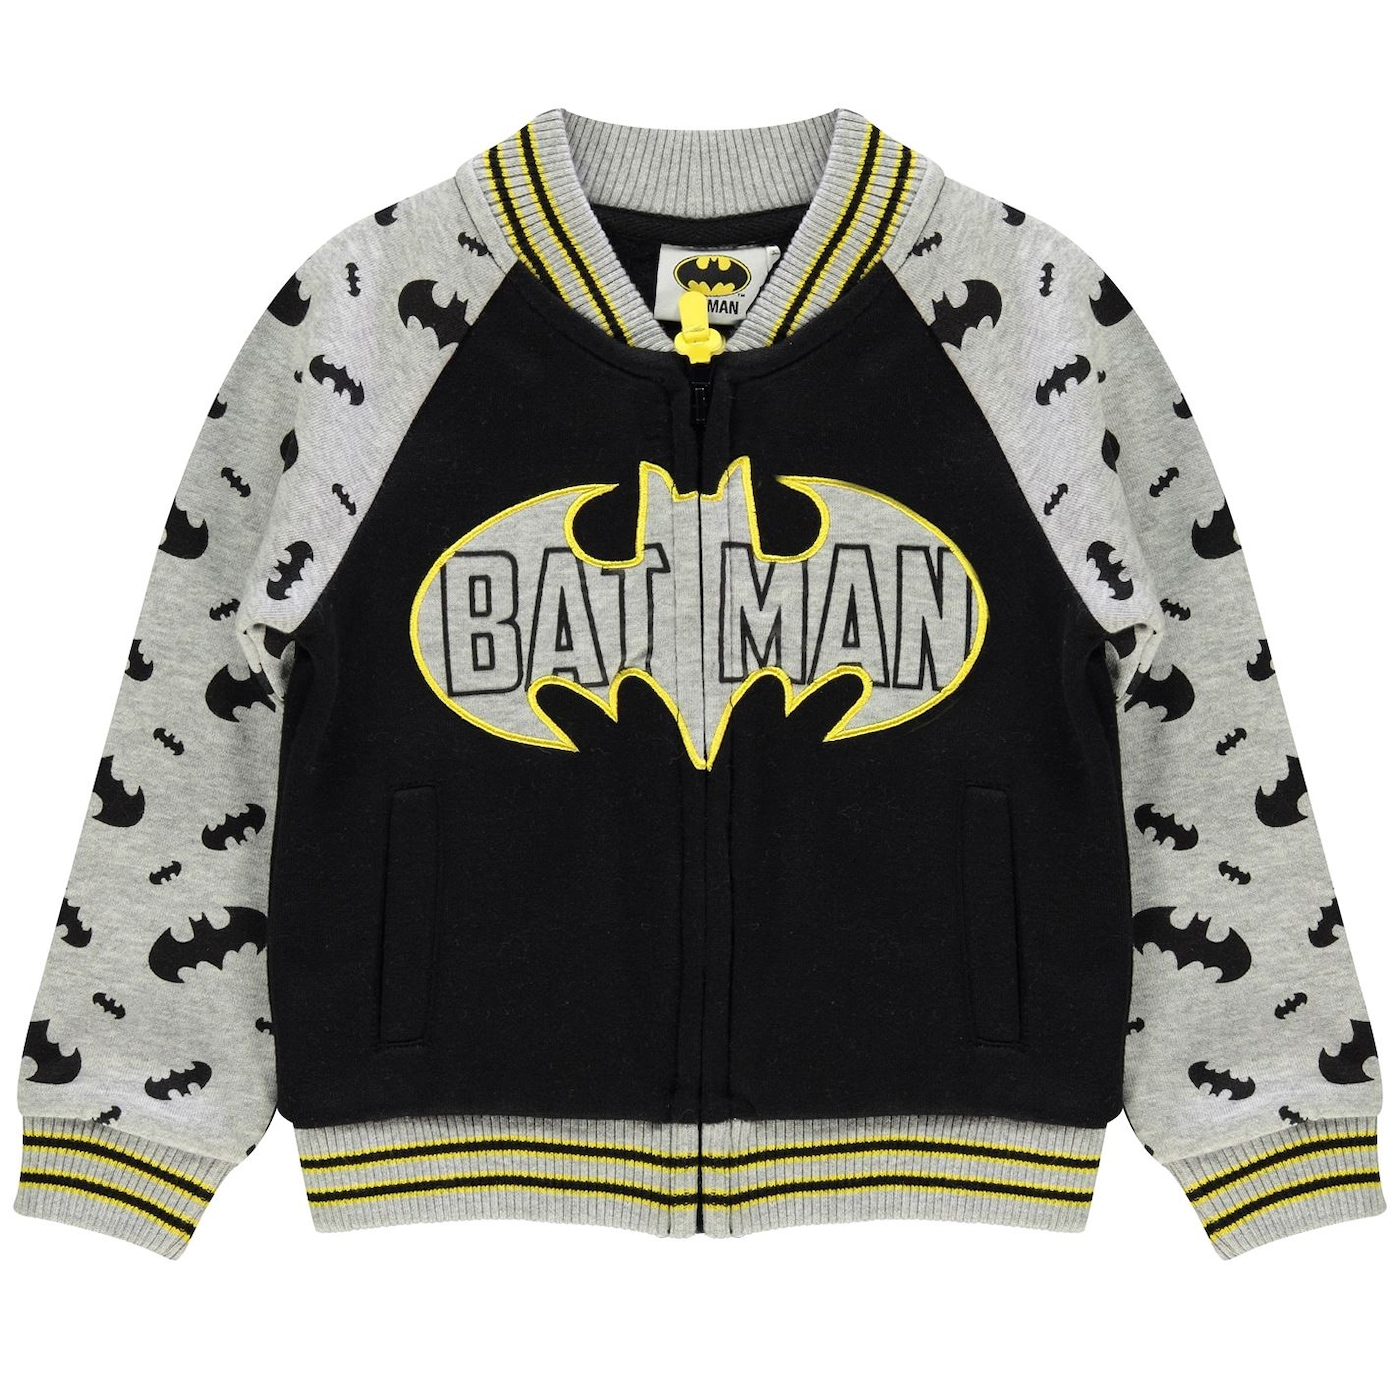 Character Boy's Baseball Jacket